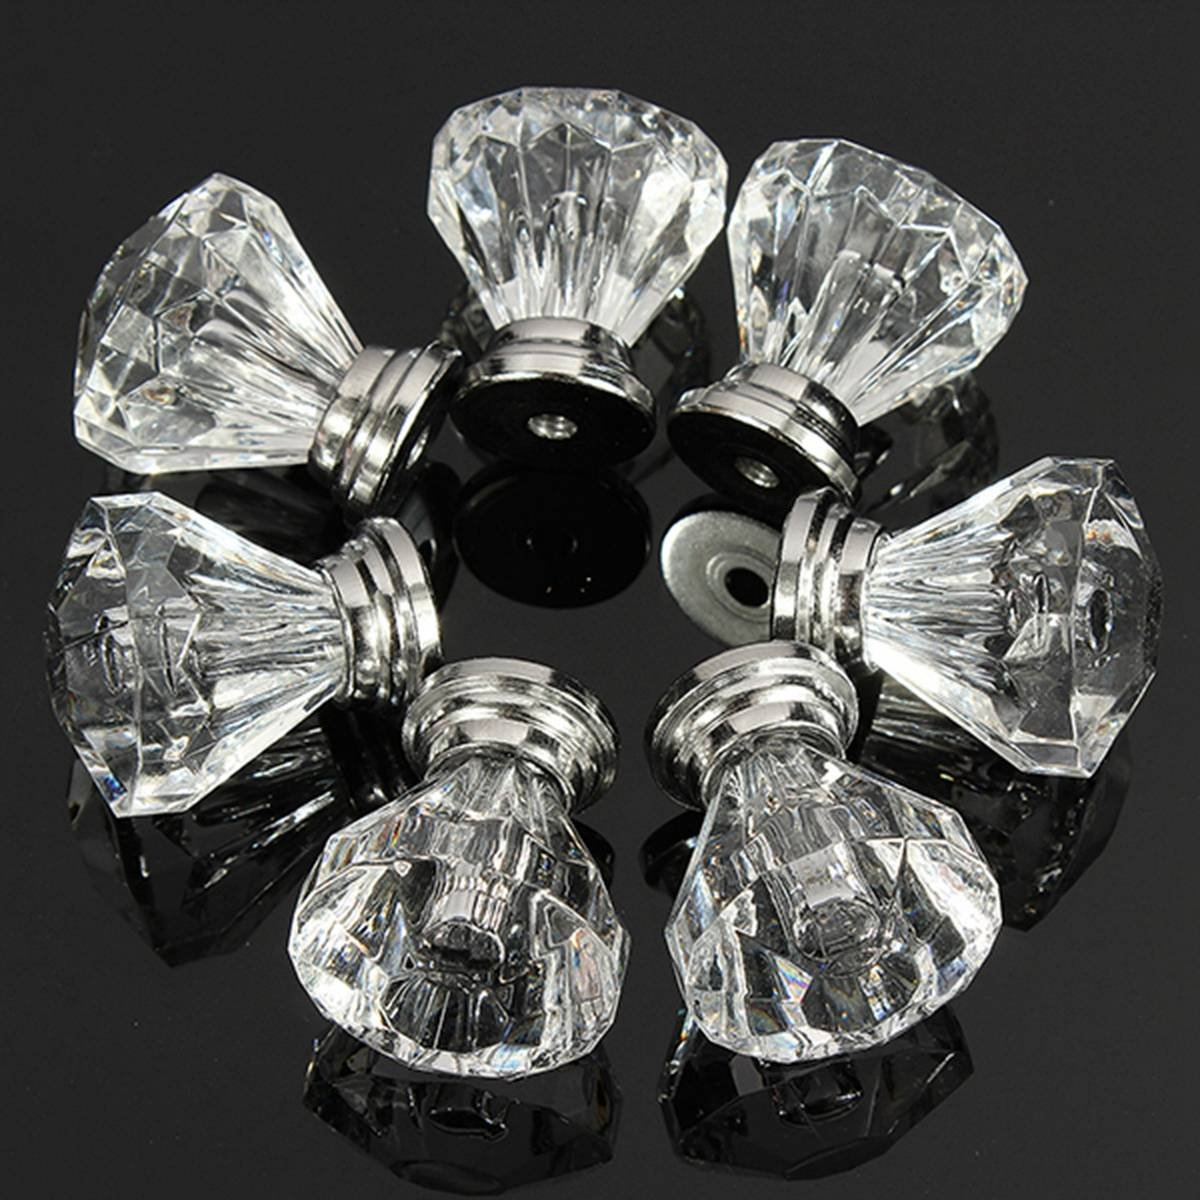 High Quality 12pcs Acrylic Crystal Door Drawer Knob Pull Handle Cabinet Cupboard Clear new original ifs204 door proximity switch high quality